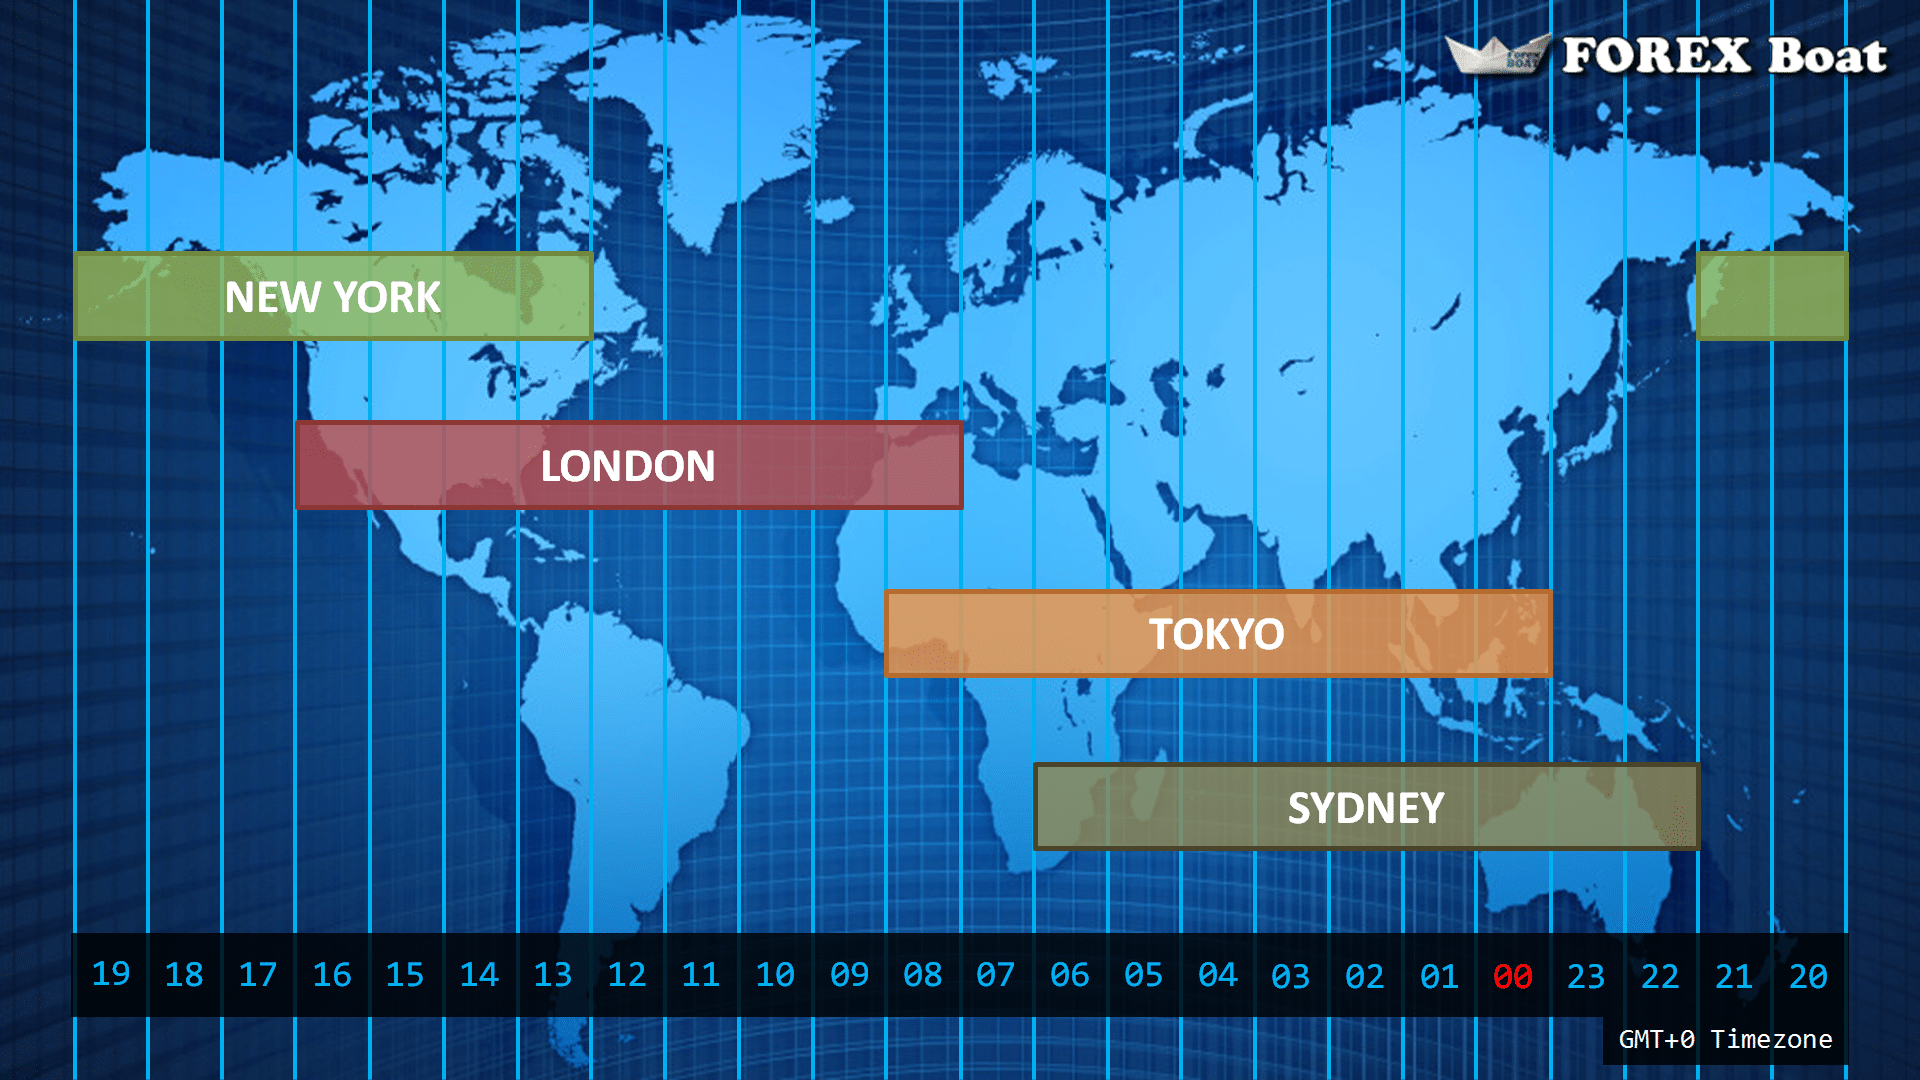 Global Forex Market Trading Hours